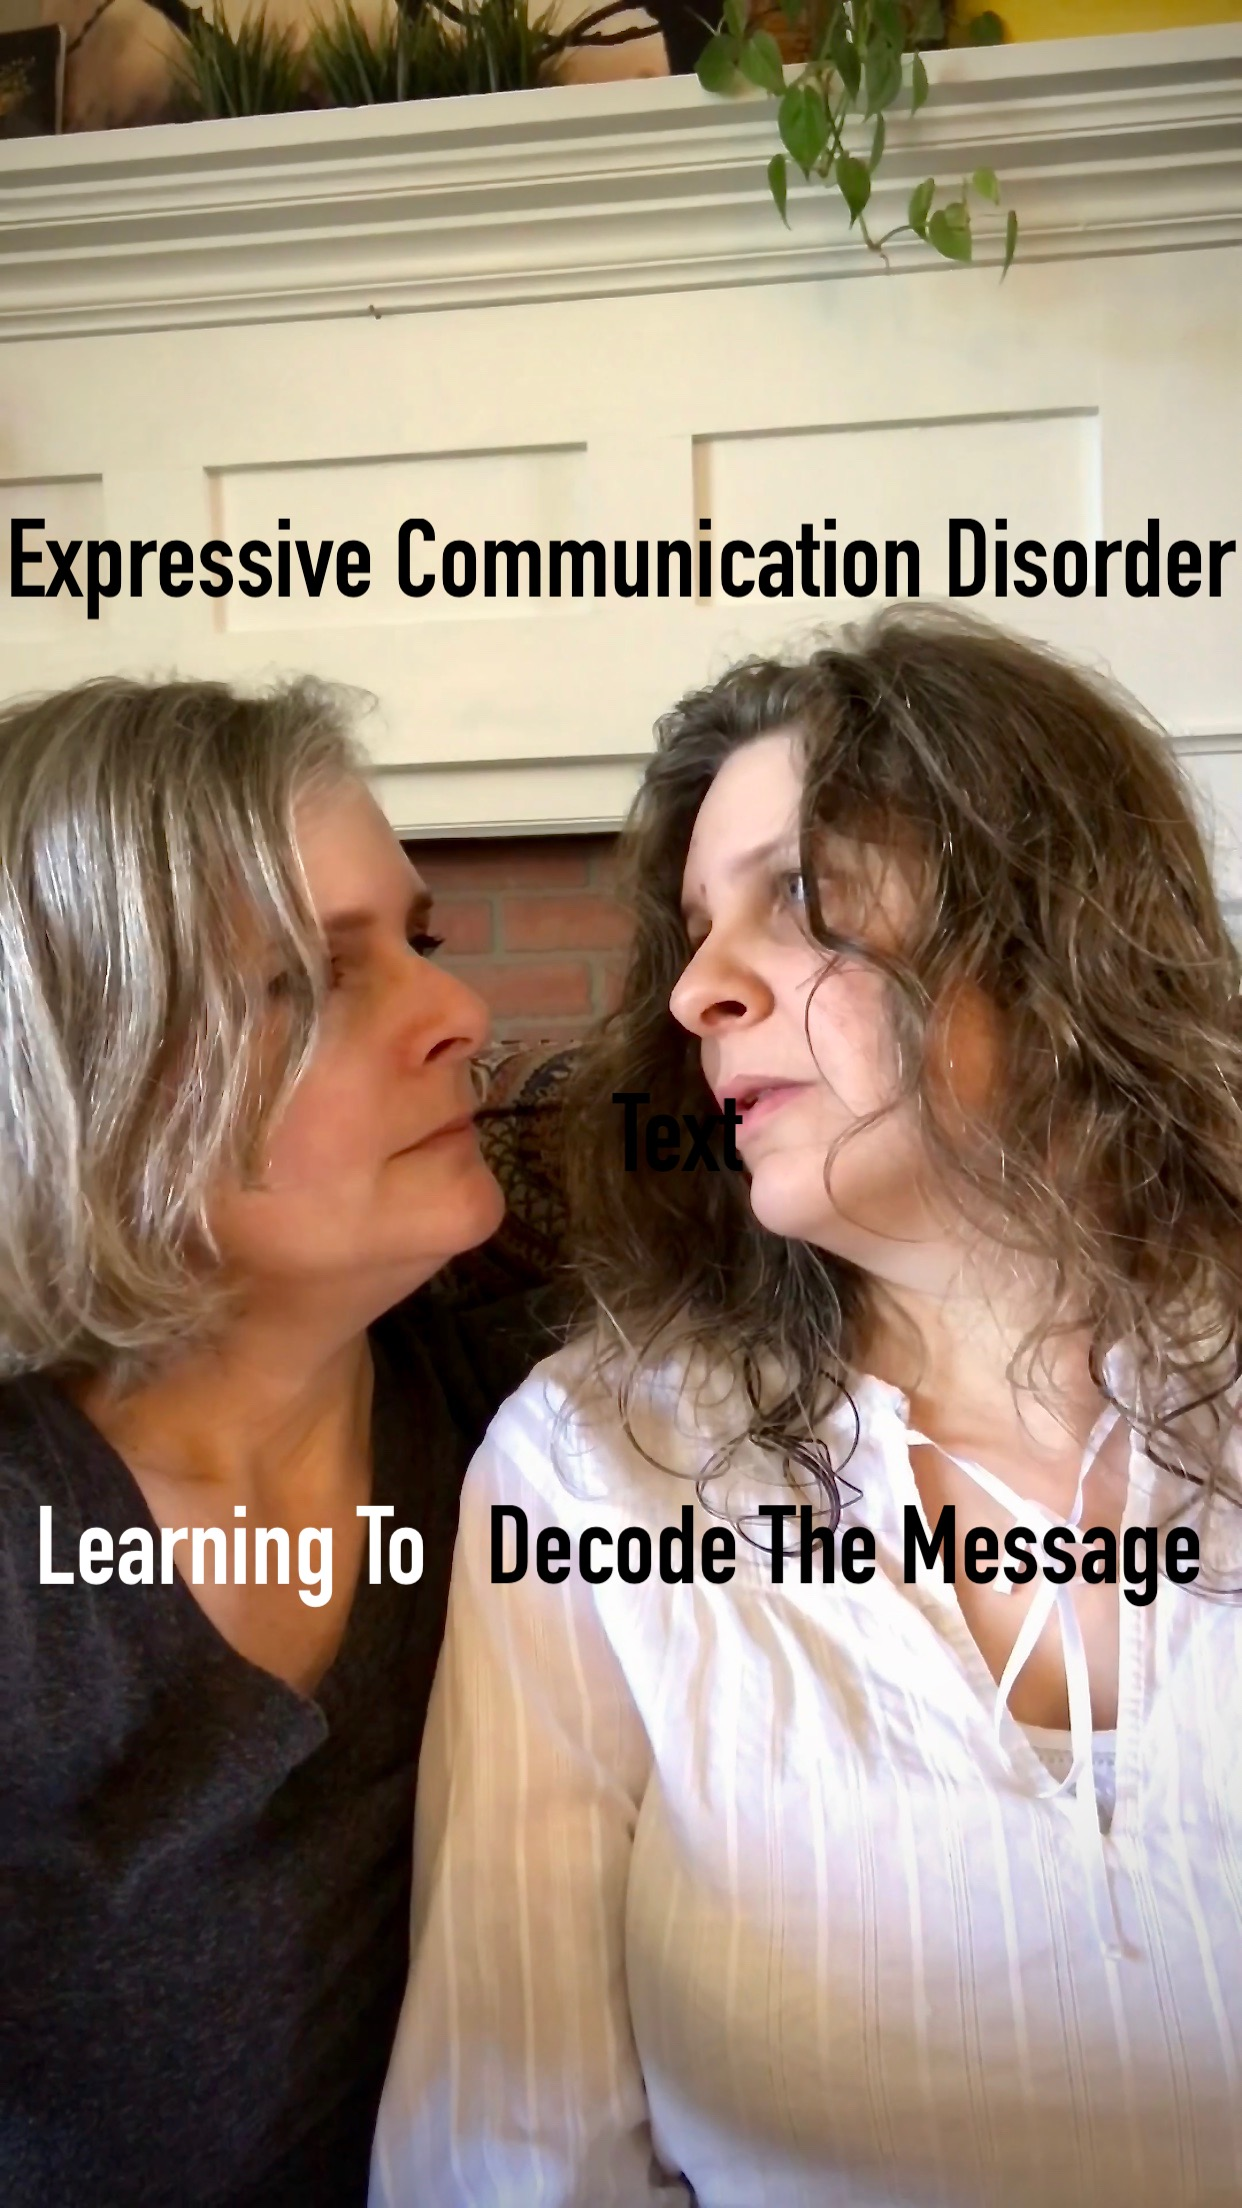 Expressive Communication Disorder - Learning To Decode The Message